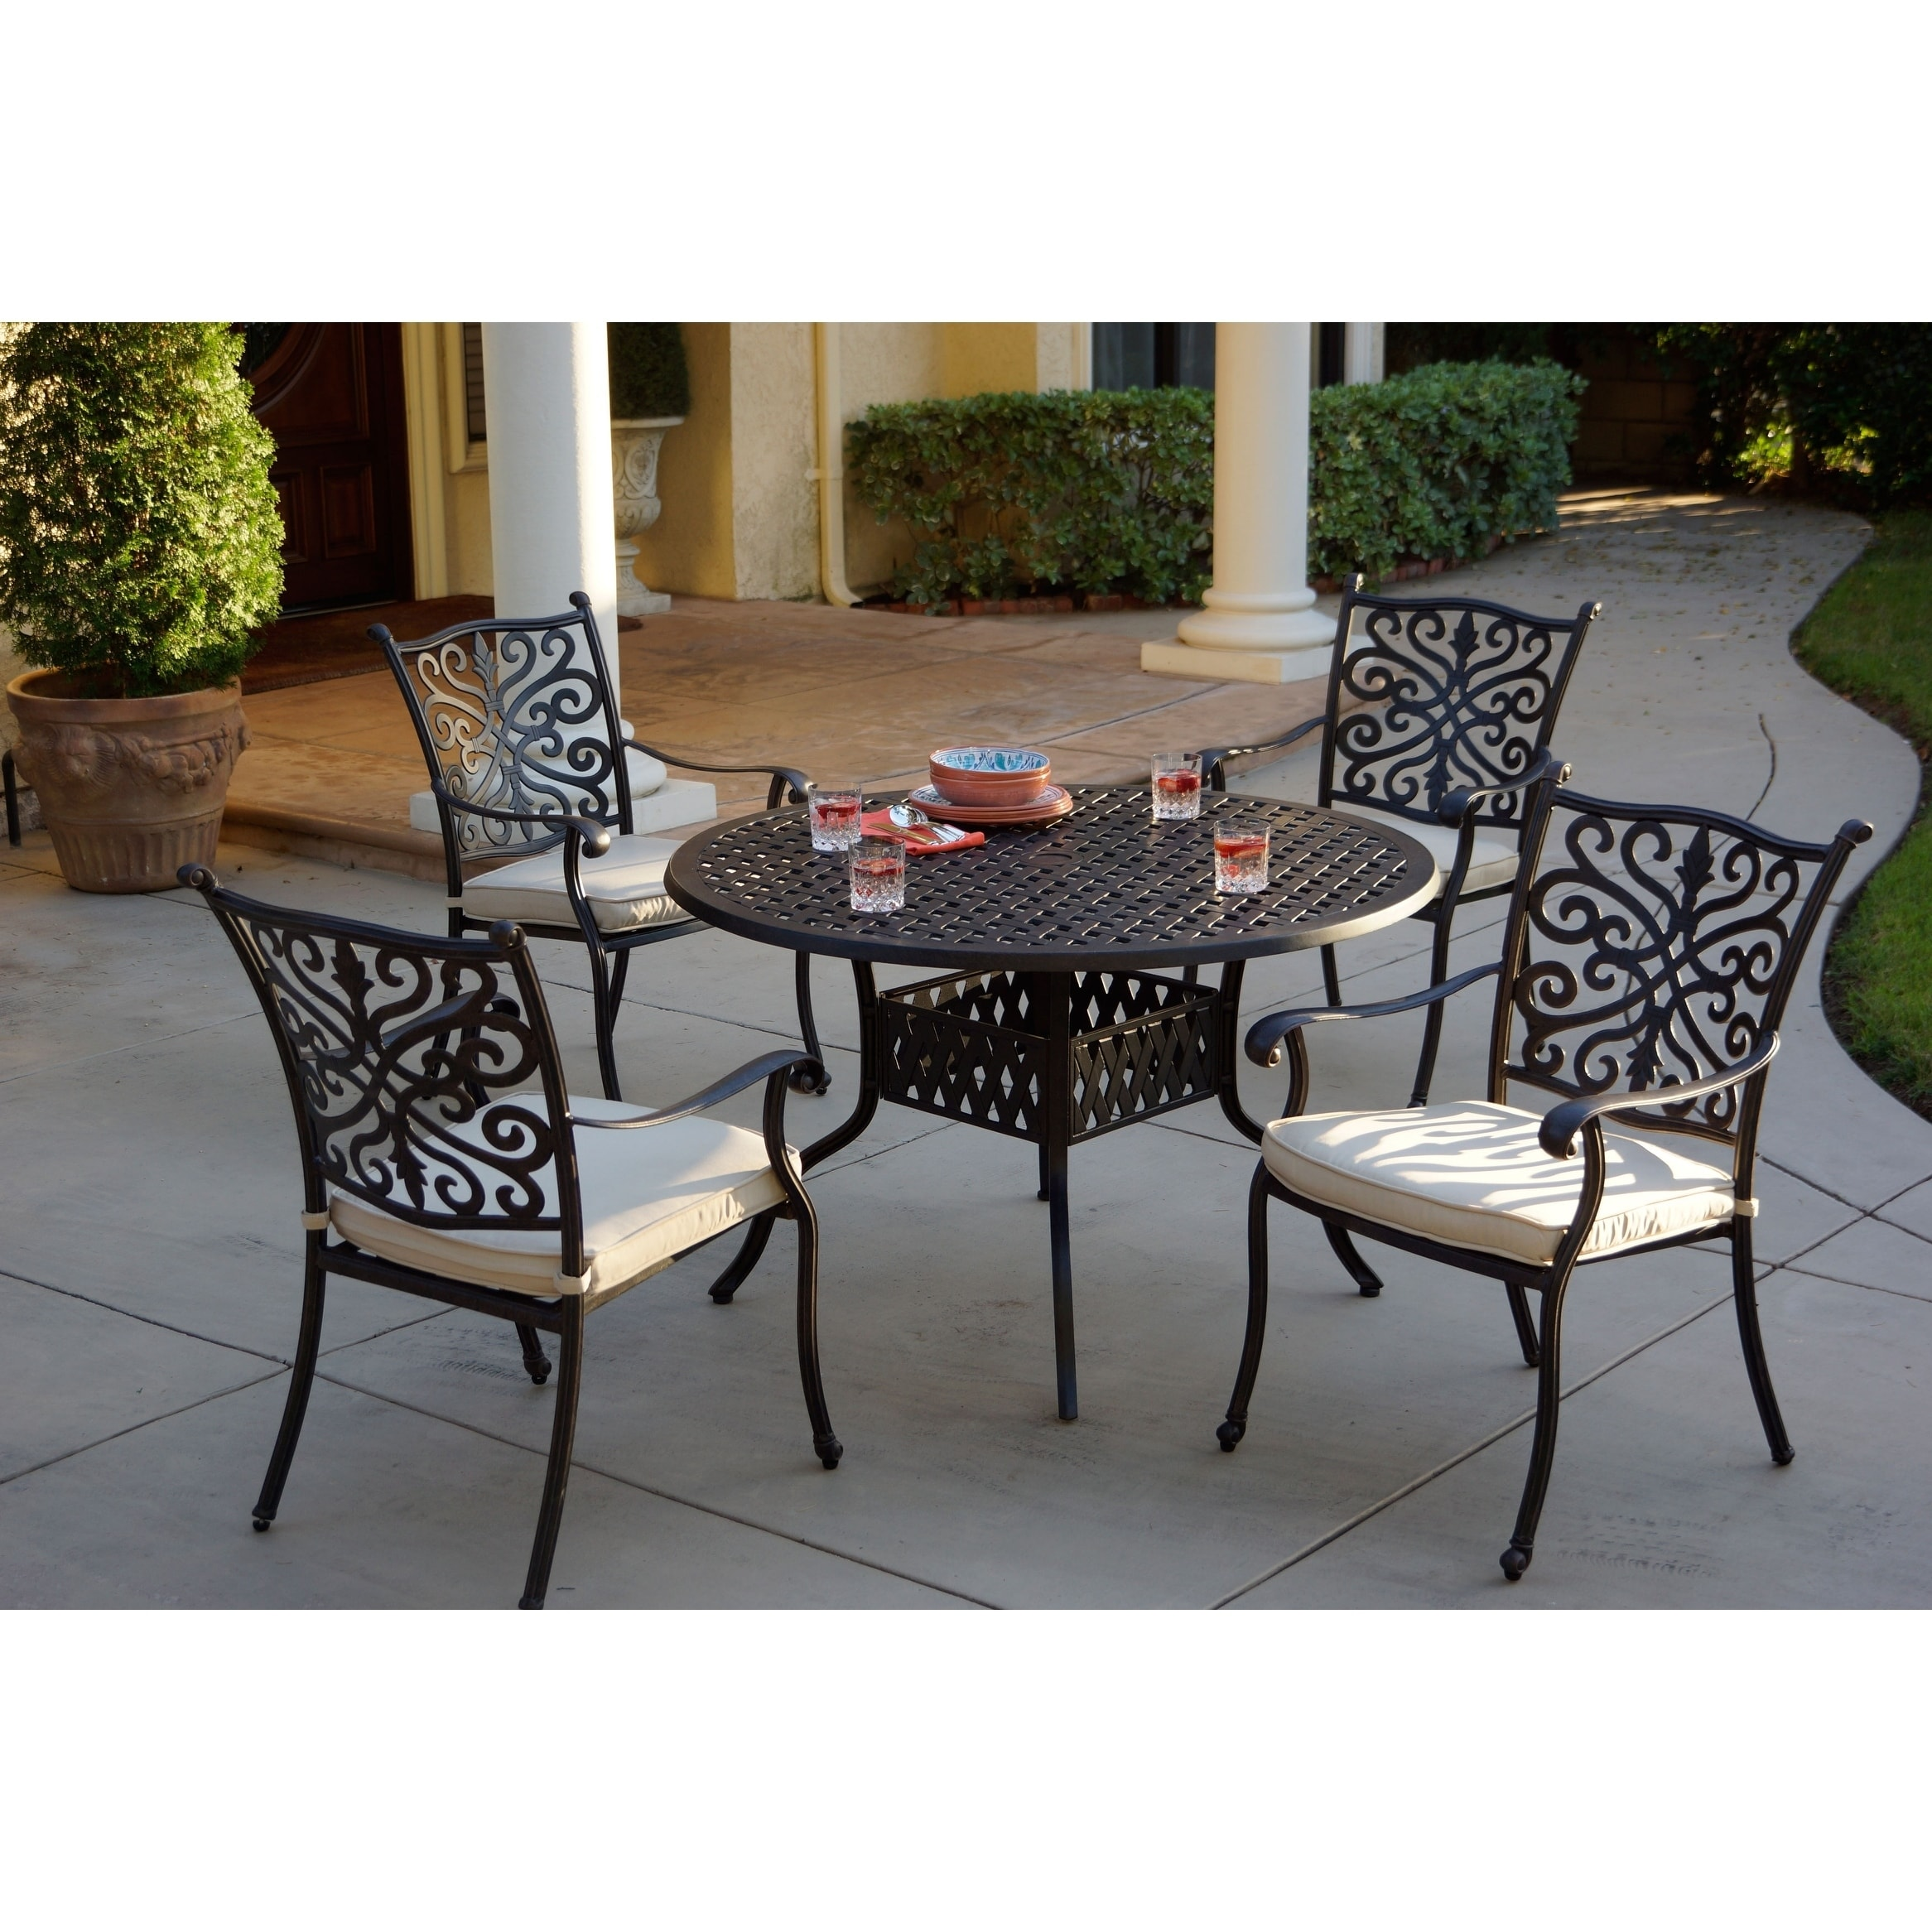 Casablanca 5-Piece Dining Set,48 Inch Round,Desert Bronze - Antique Bronze